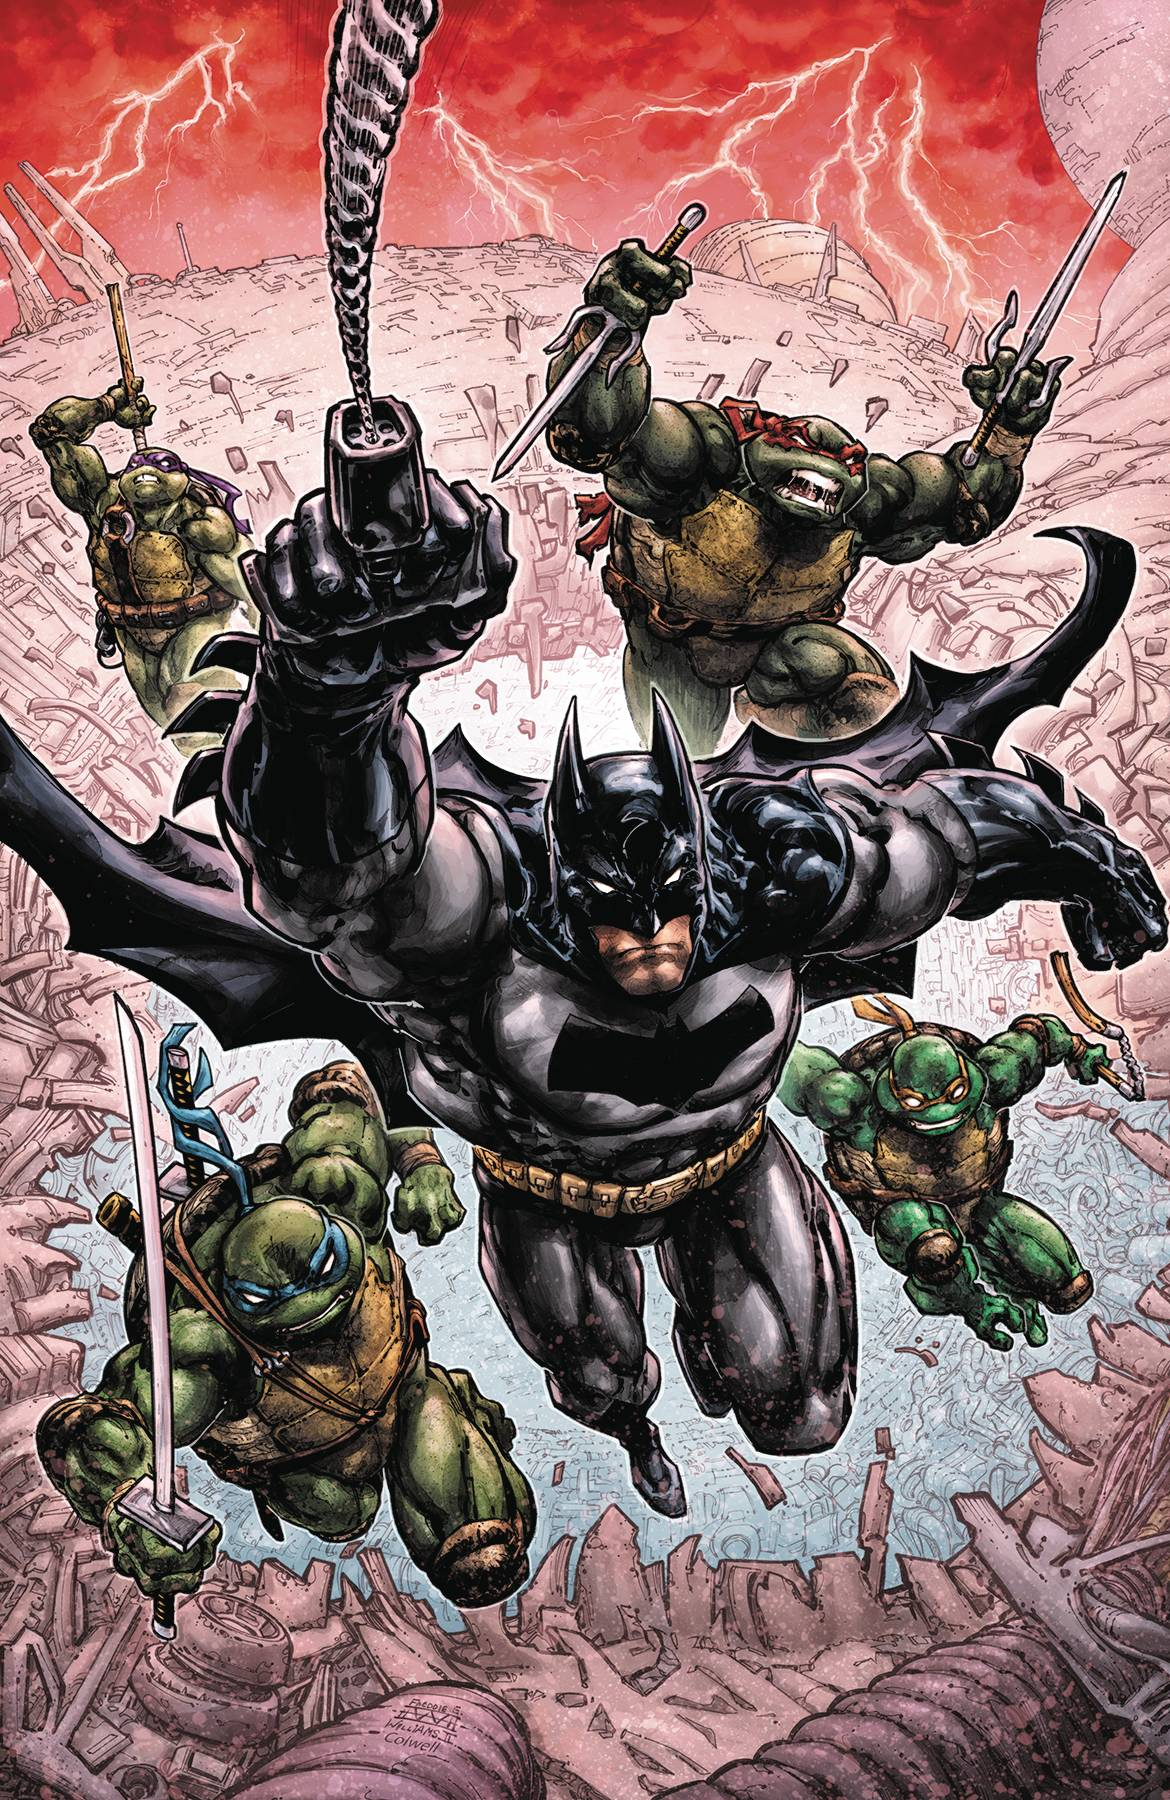 BATMAN TEENAGE MUTANT NINJA TURTLES III 1 of 6.jpg